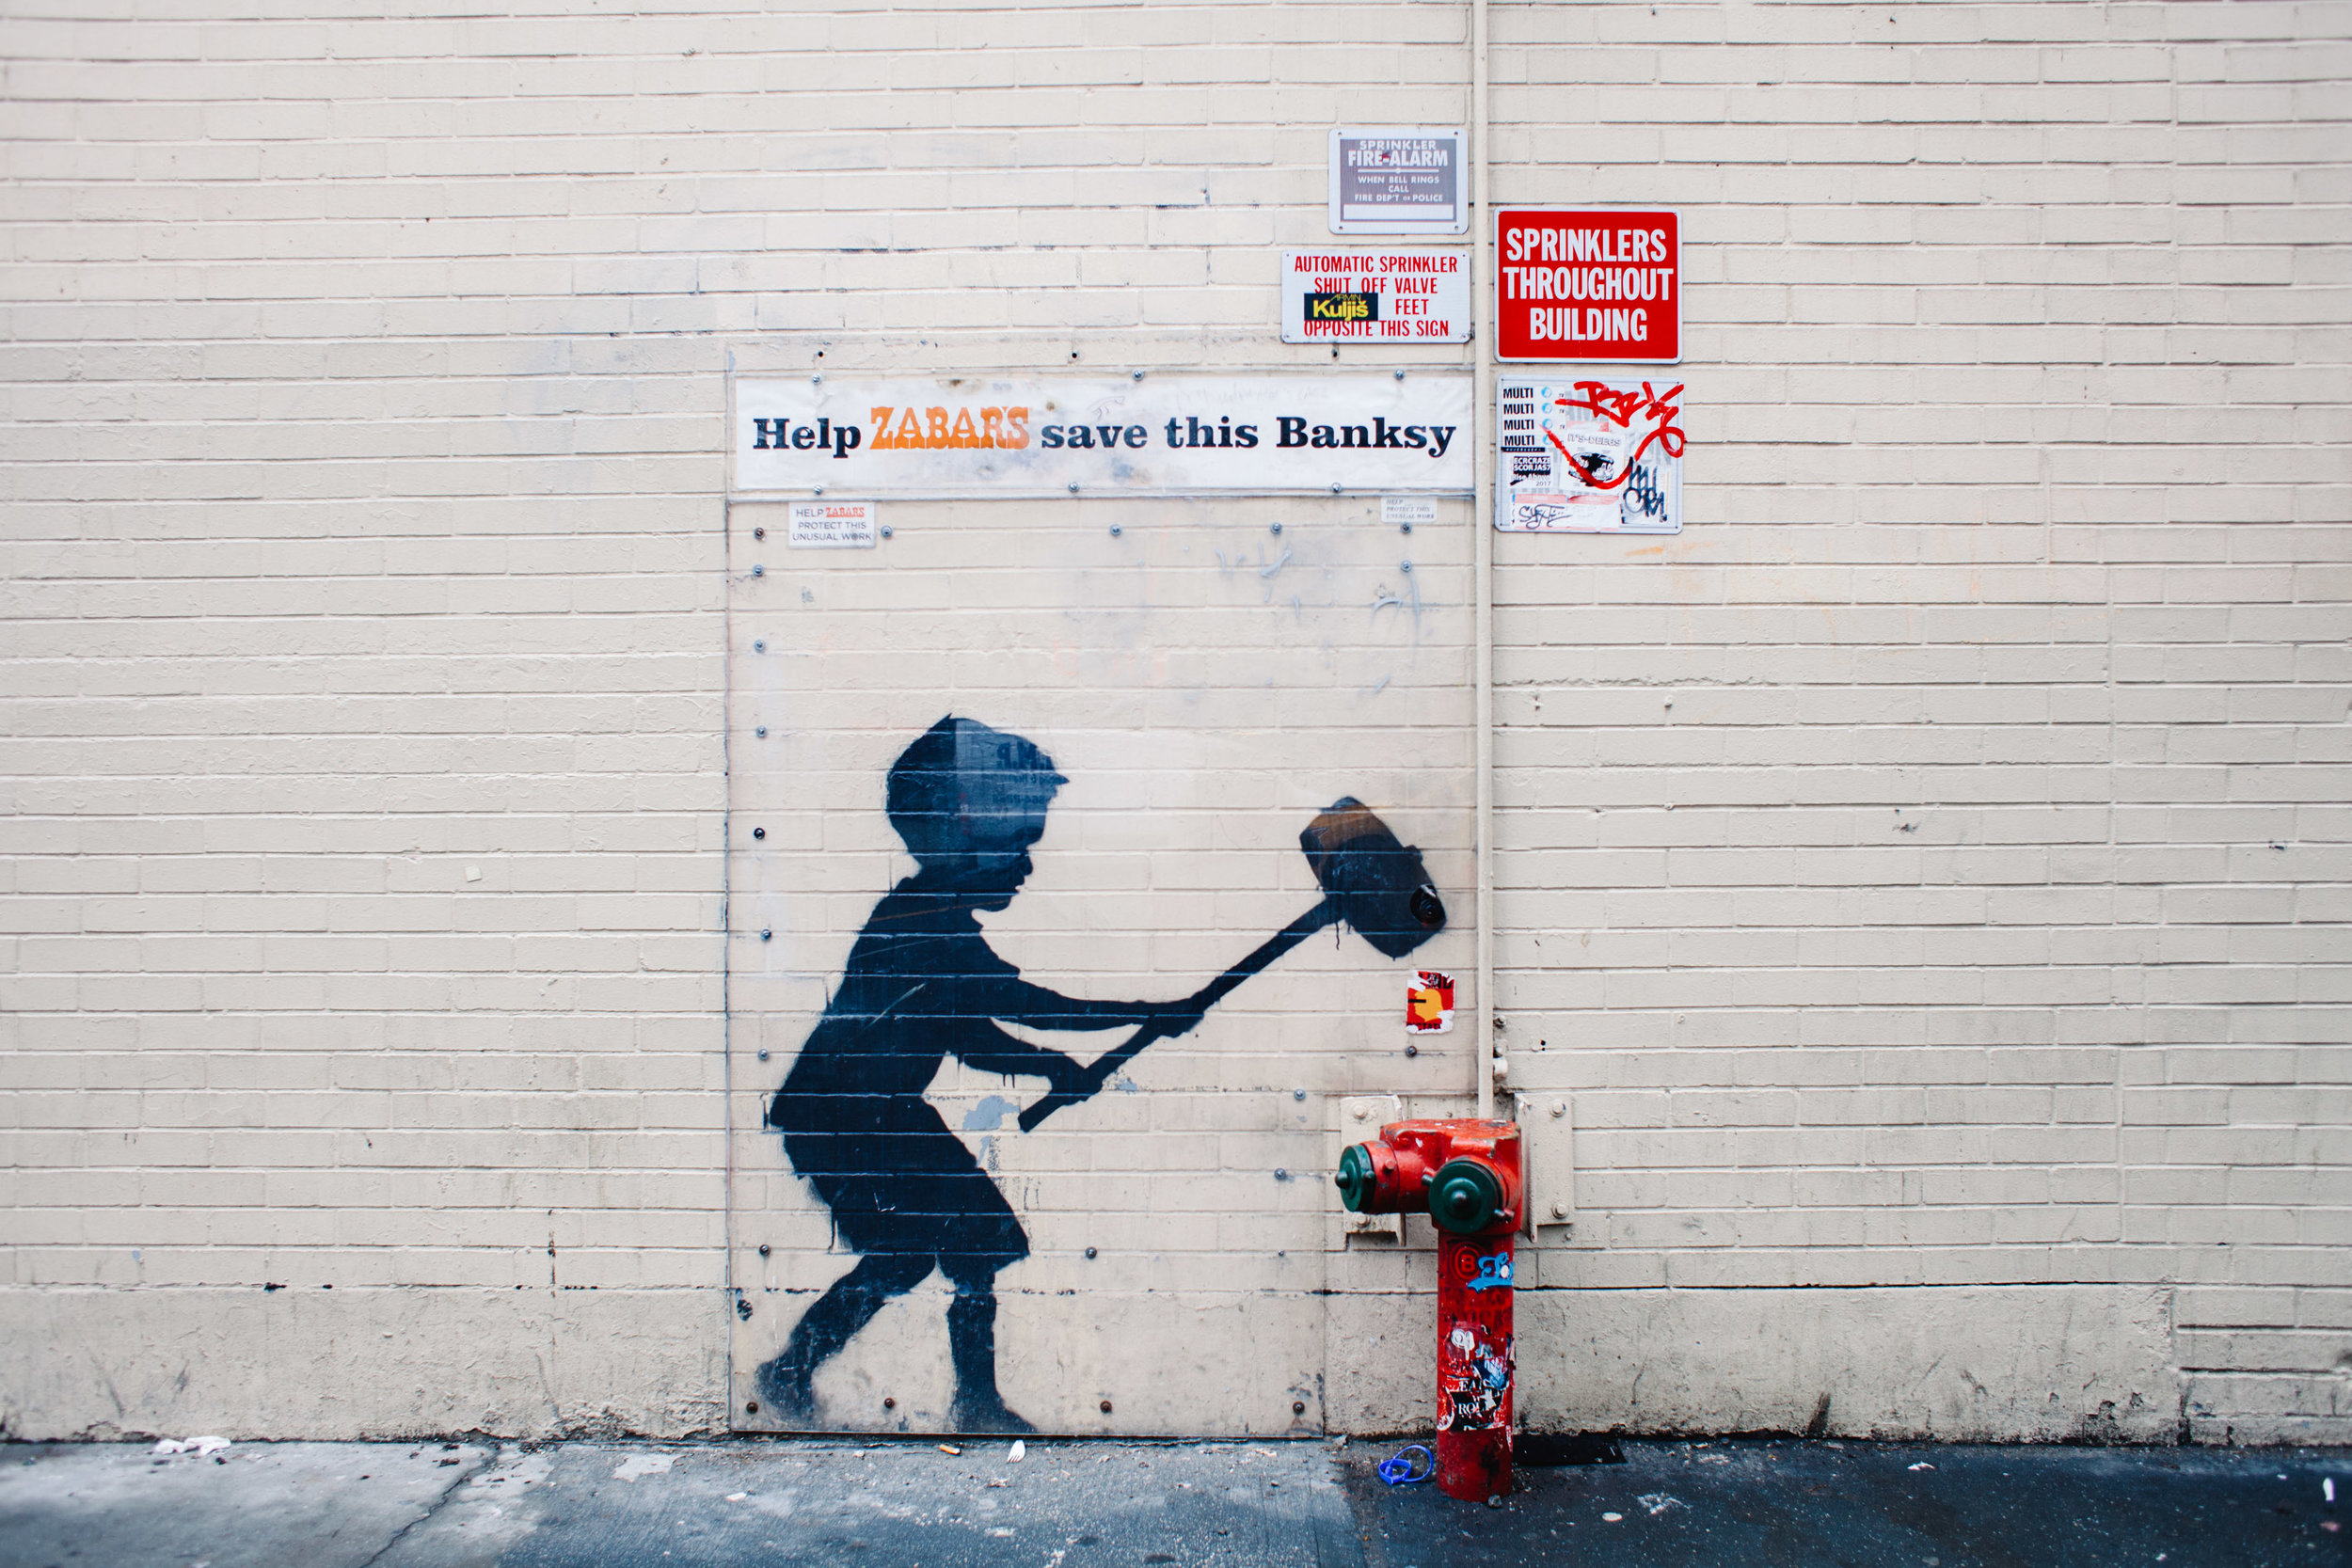 Banksy | Hammer Boy | Upper West Side | NYC // support the arts:  https://www.artsy.net/artist/banksy  - bio, shows + prints